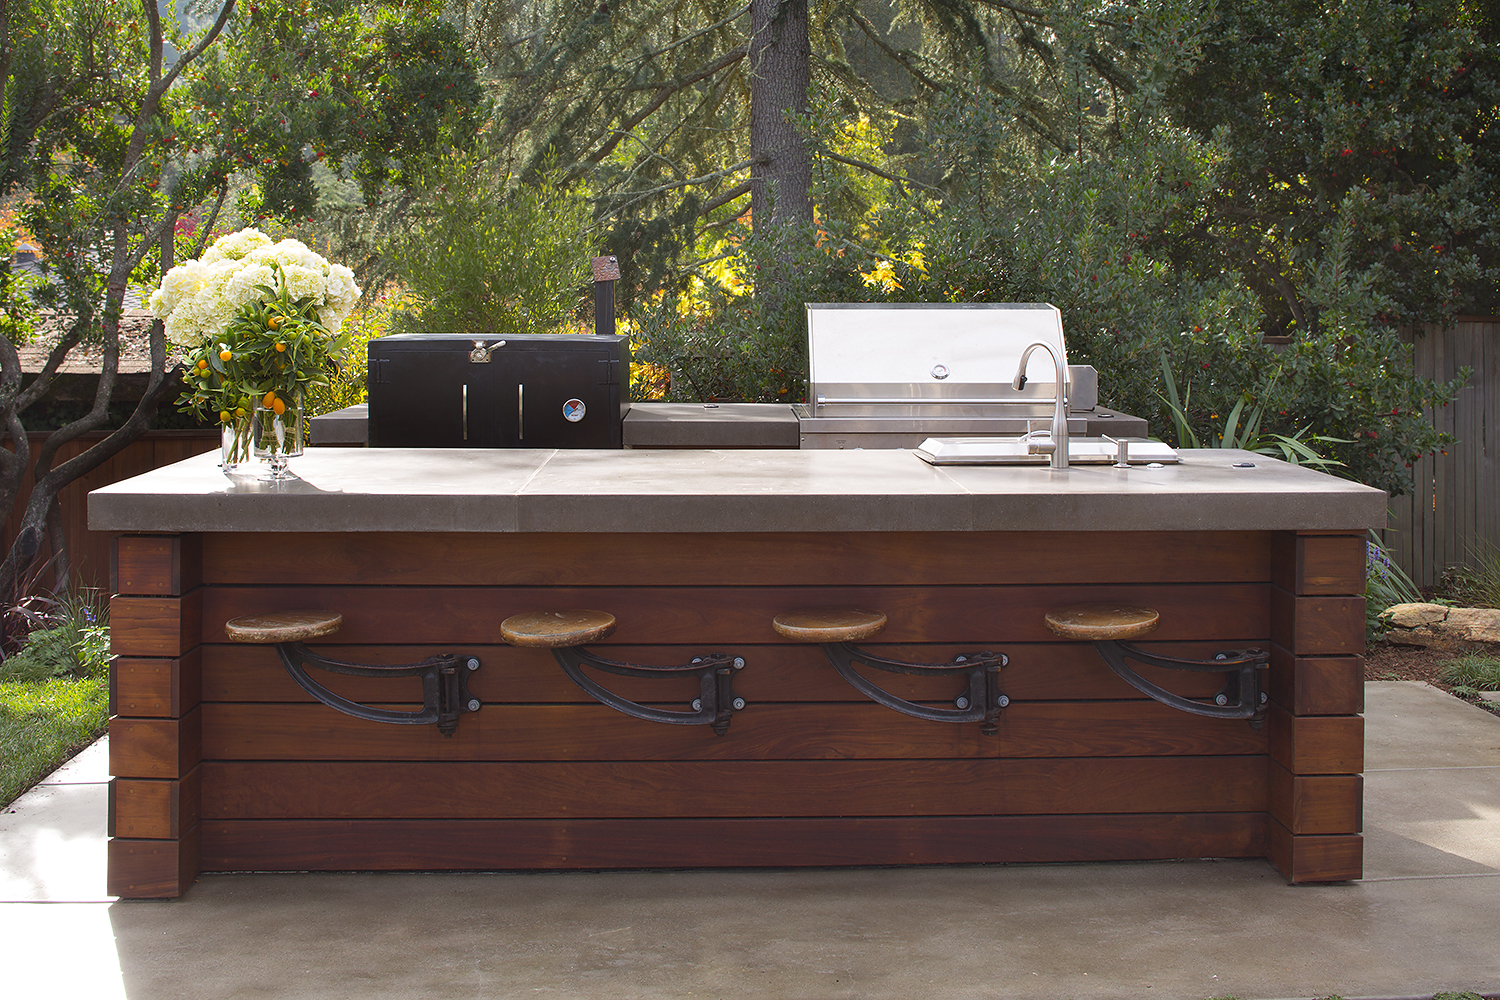 Featured on houzz outdoor kitchen and bar en francais for Outdoor kitchen ideas houzz